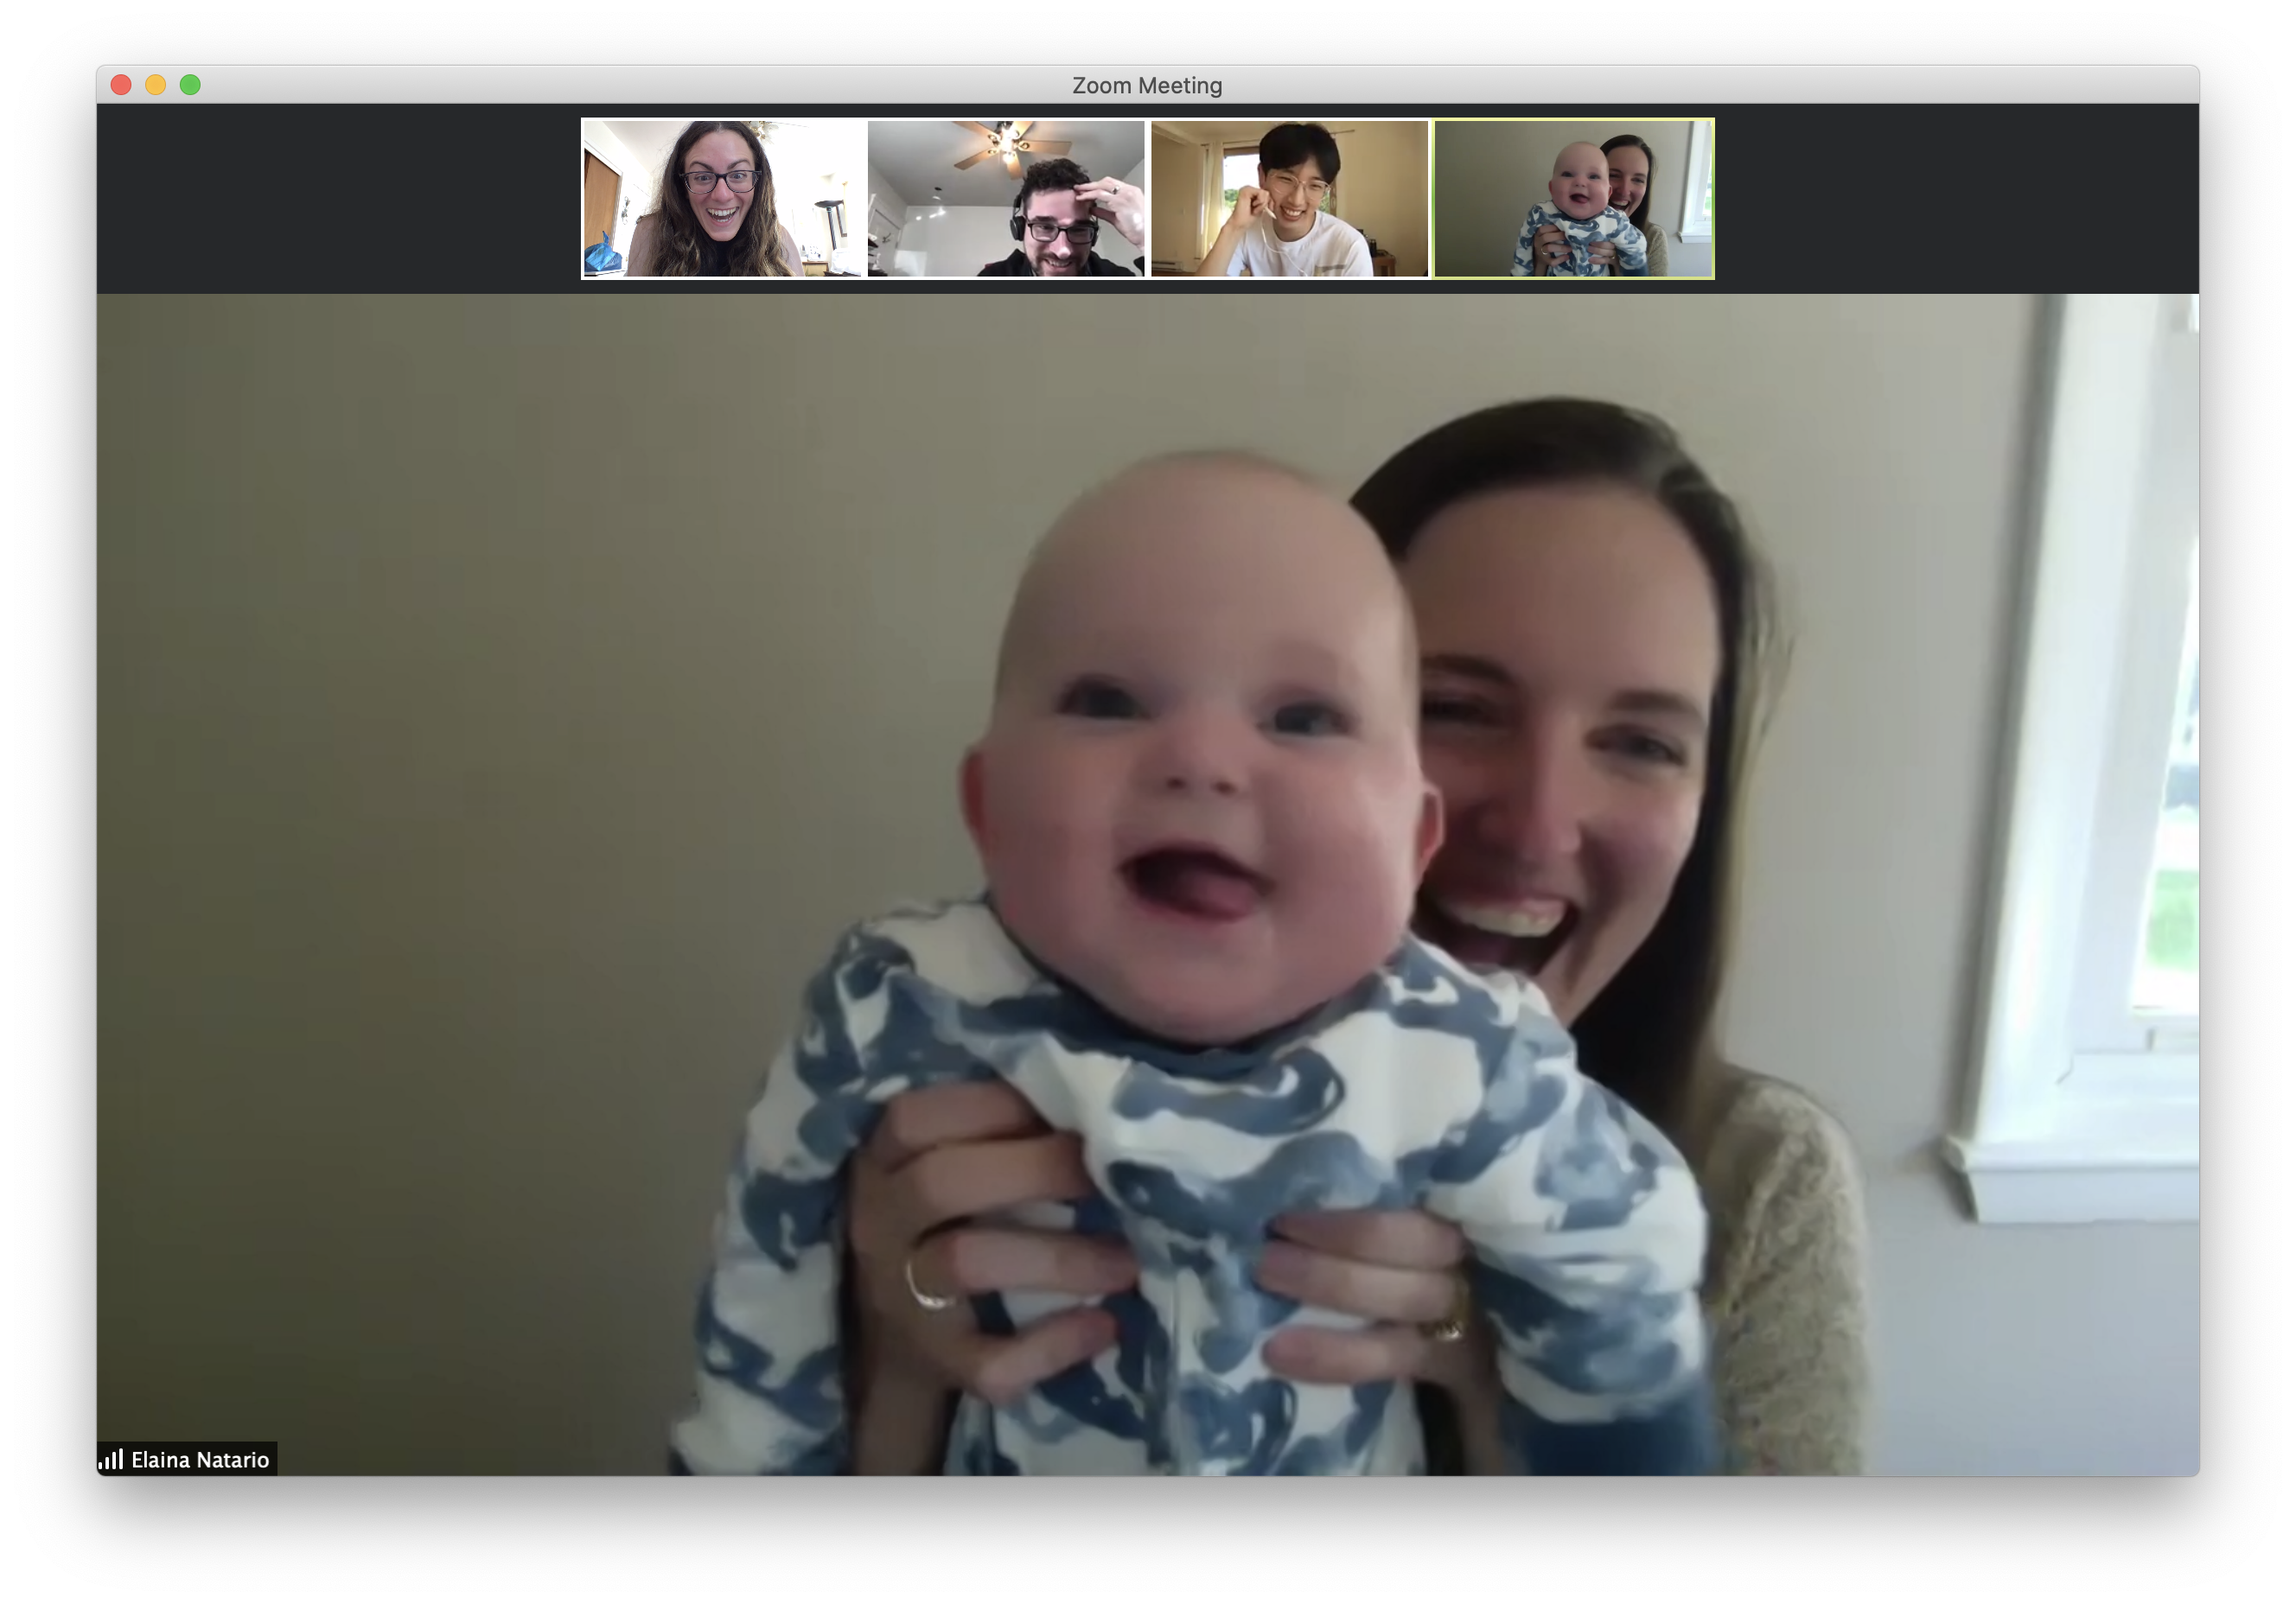 A screen capture of a video meeting on Zoom. There are four small screens at the top, each with a person making a funny face. The large central photo at the bottom is a woman smiling holding up a baby who is also smiling.